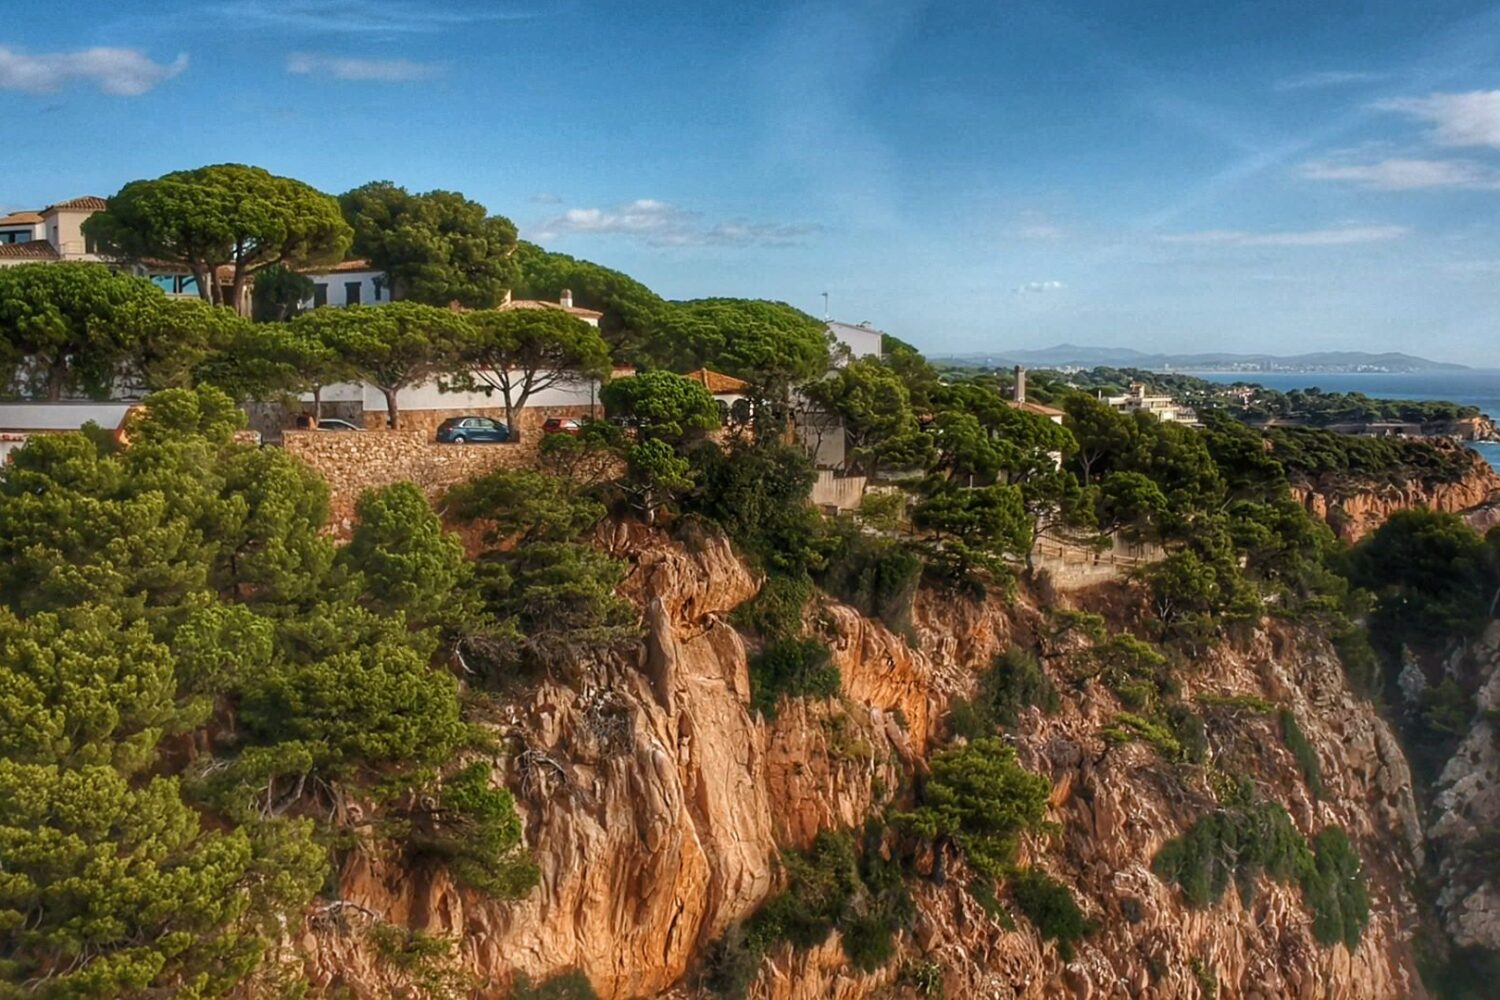 Dron view of the Costa Brava